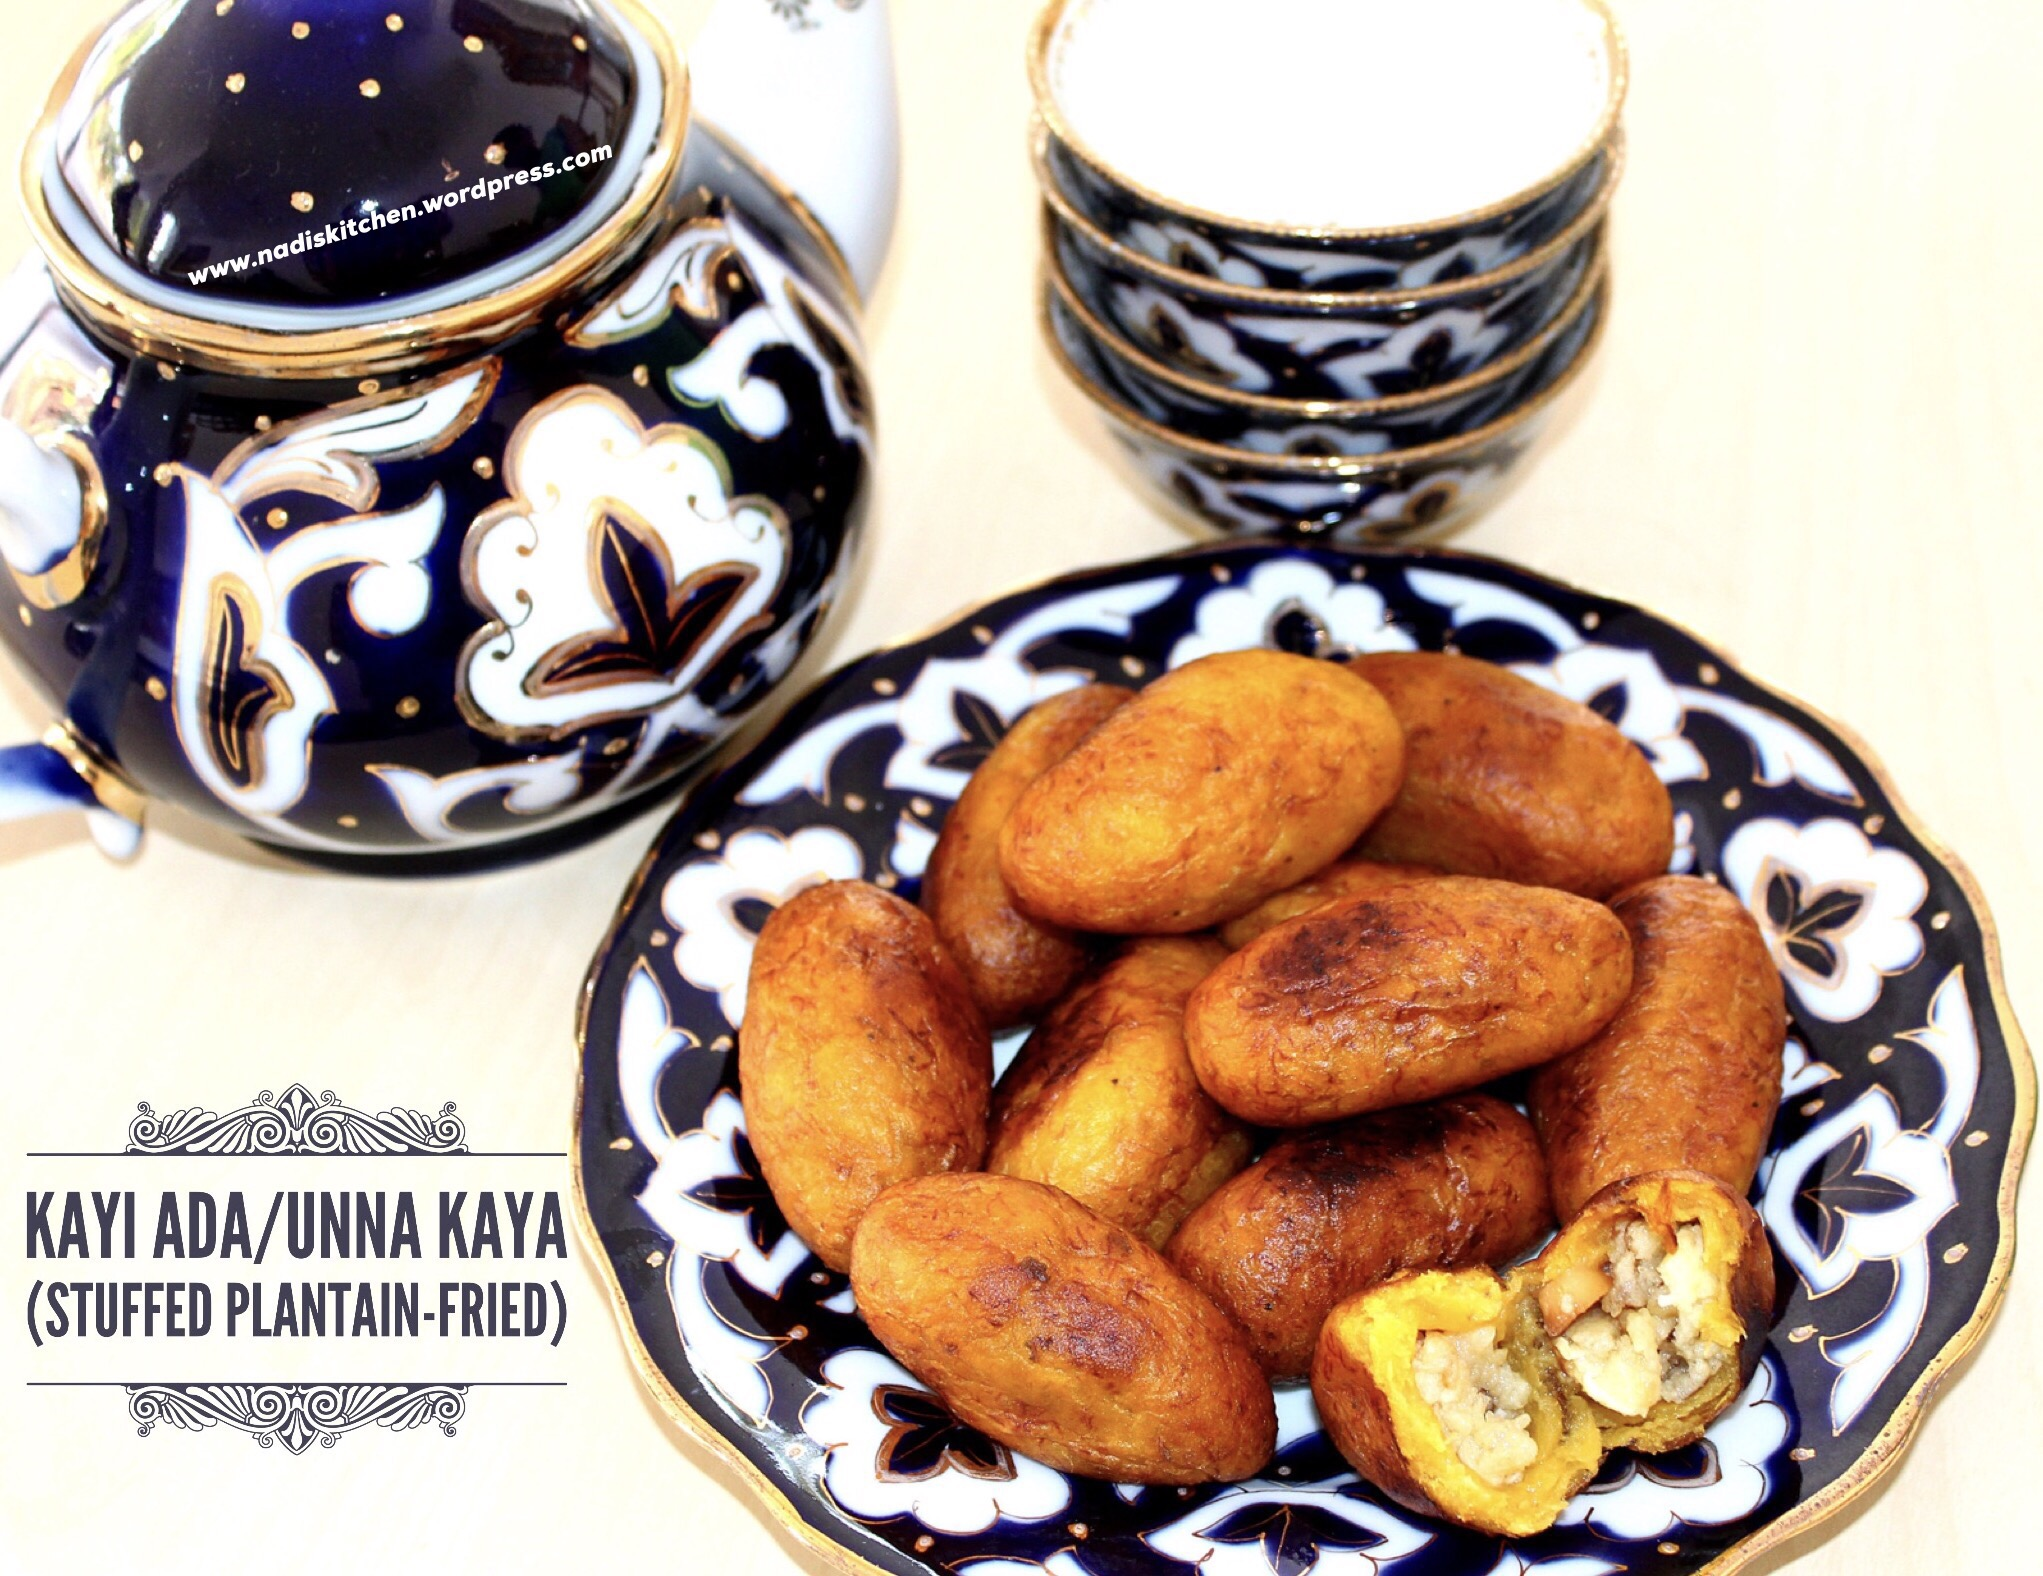 Kayi Ada/Unna Kaya (Stuffed Plantain-Fried)